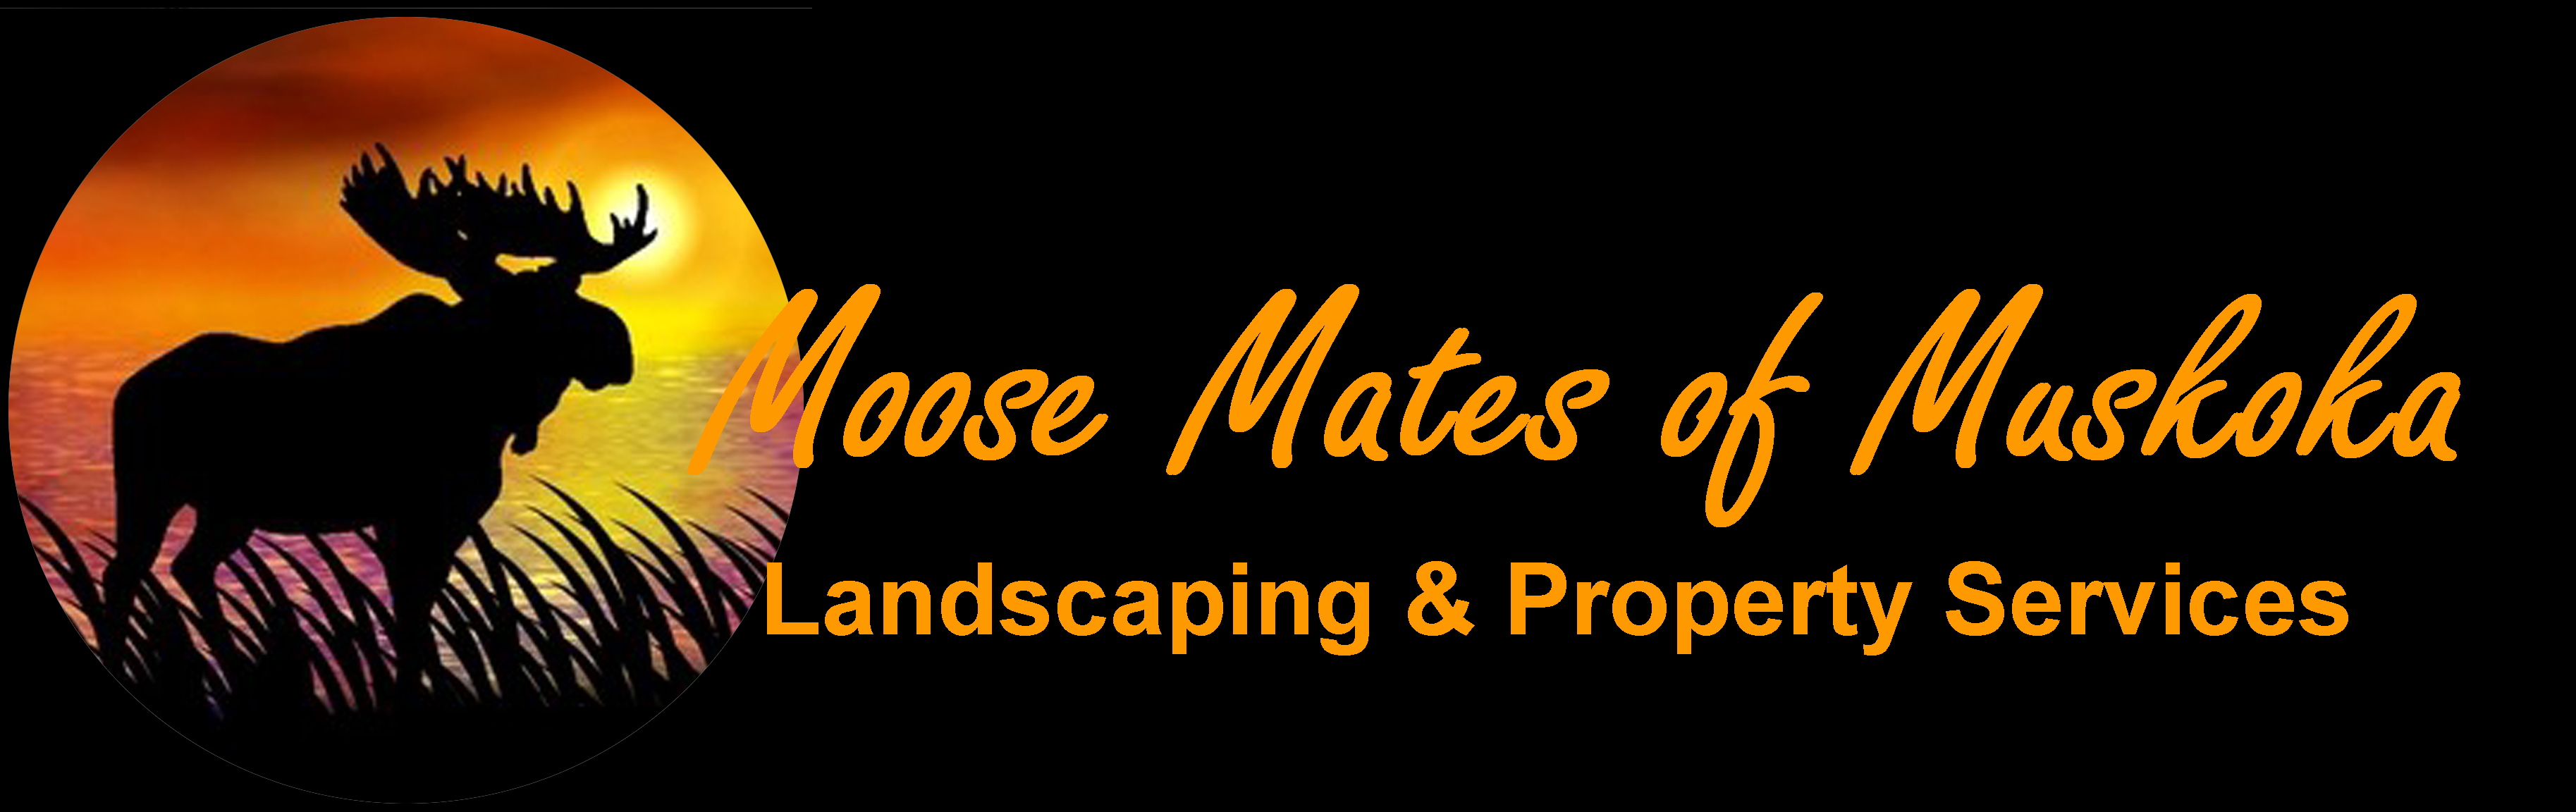 Full size lightbox of Moose Mates of Muskoka Landscaping & Property Services image 0